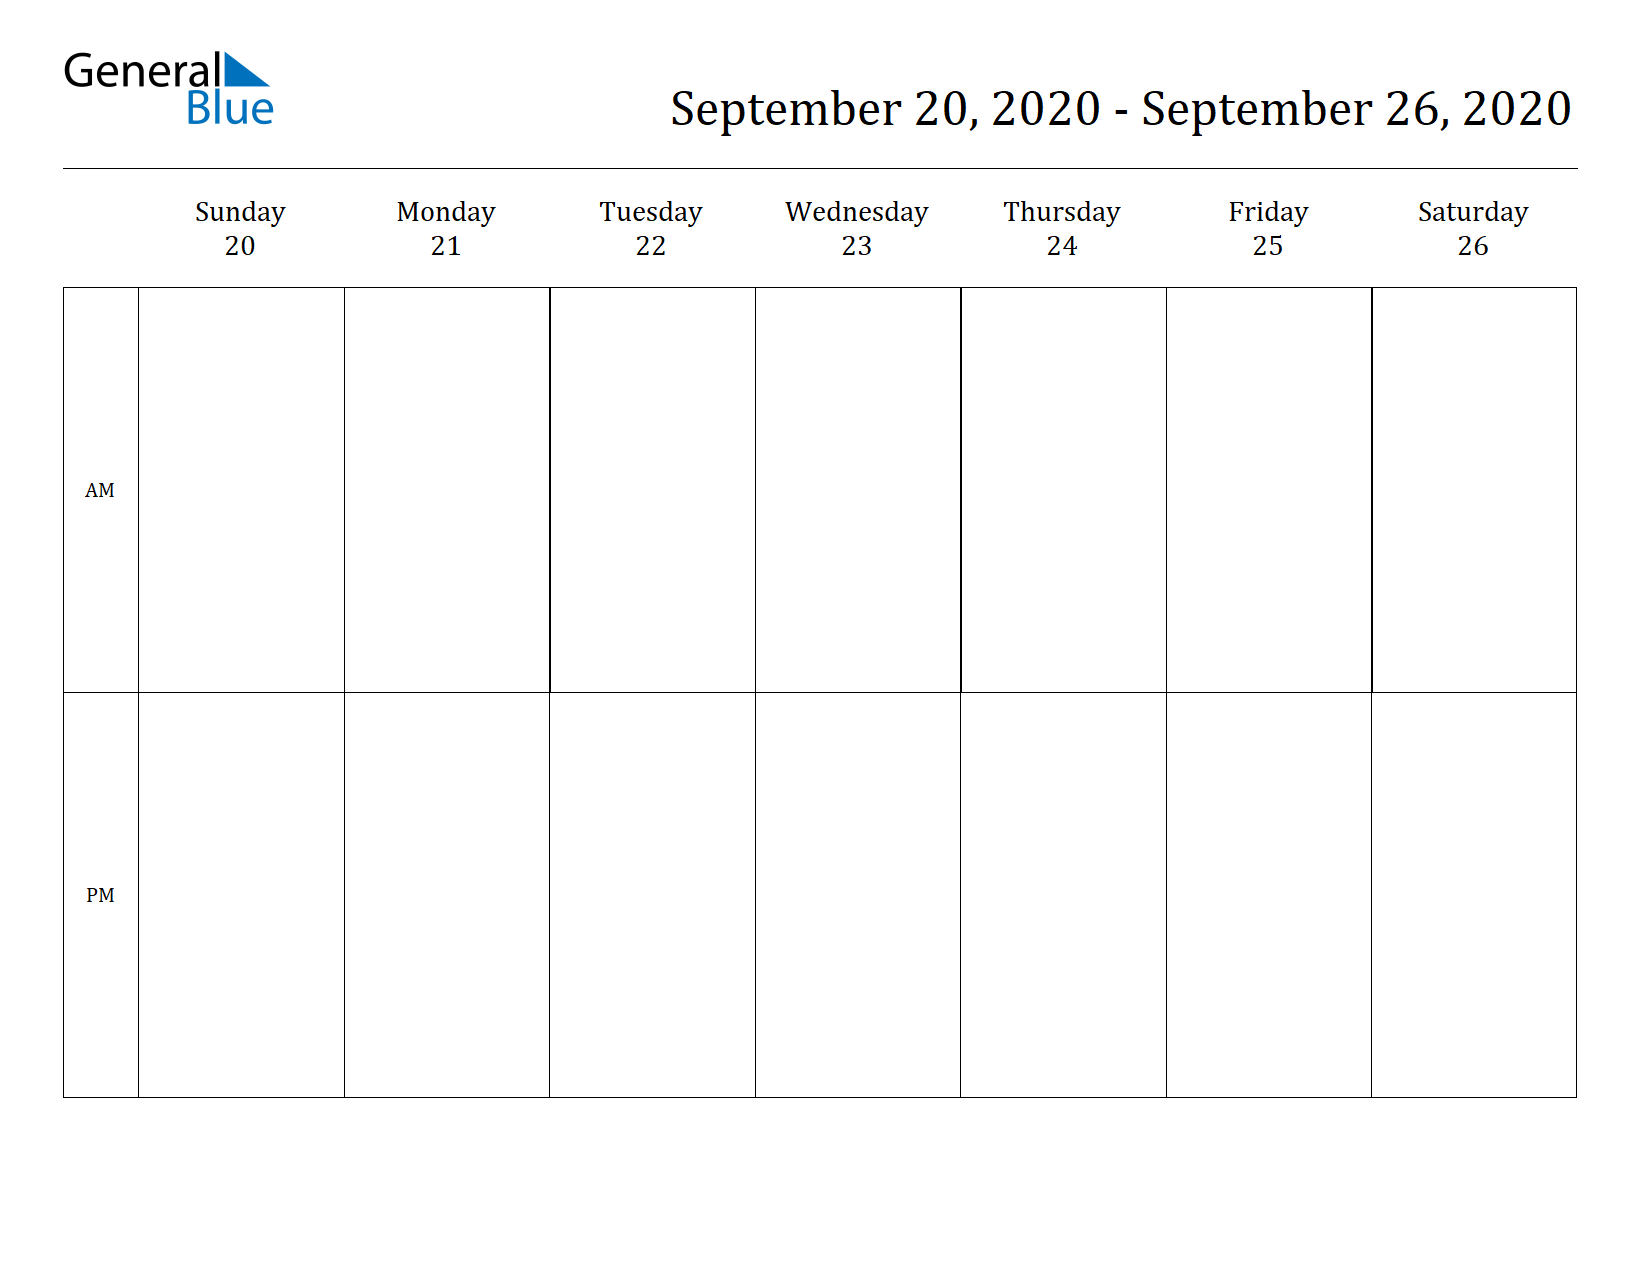 Weekly Calendar for Sep 20, 2020 to Sep 26, 2020